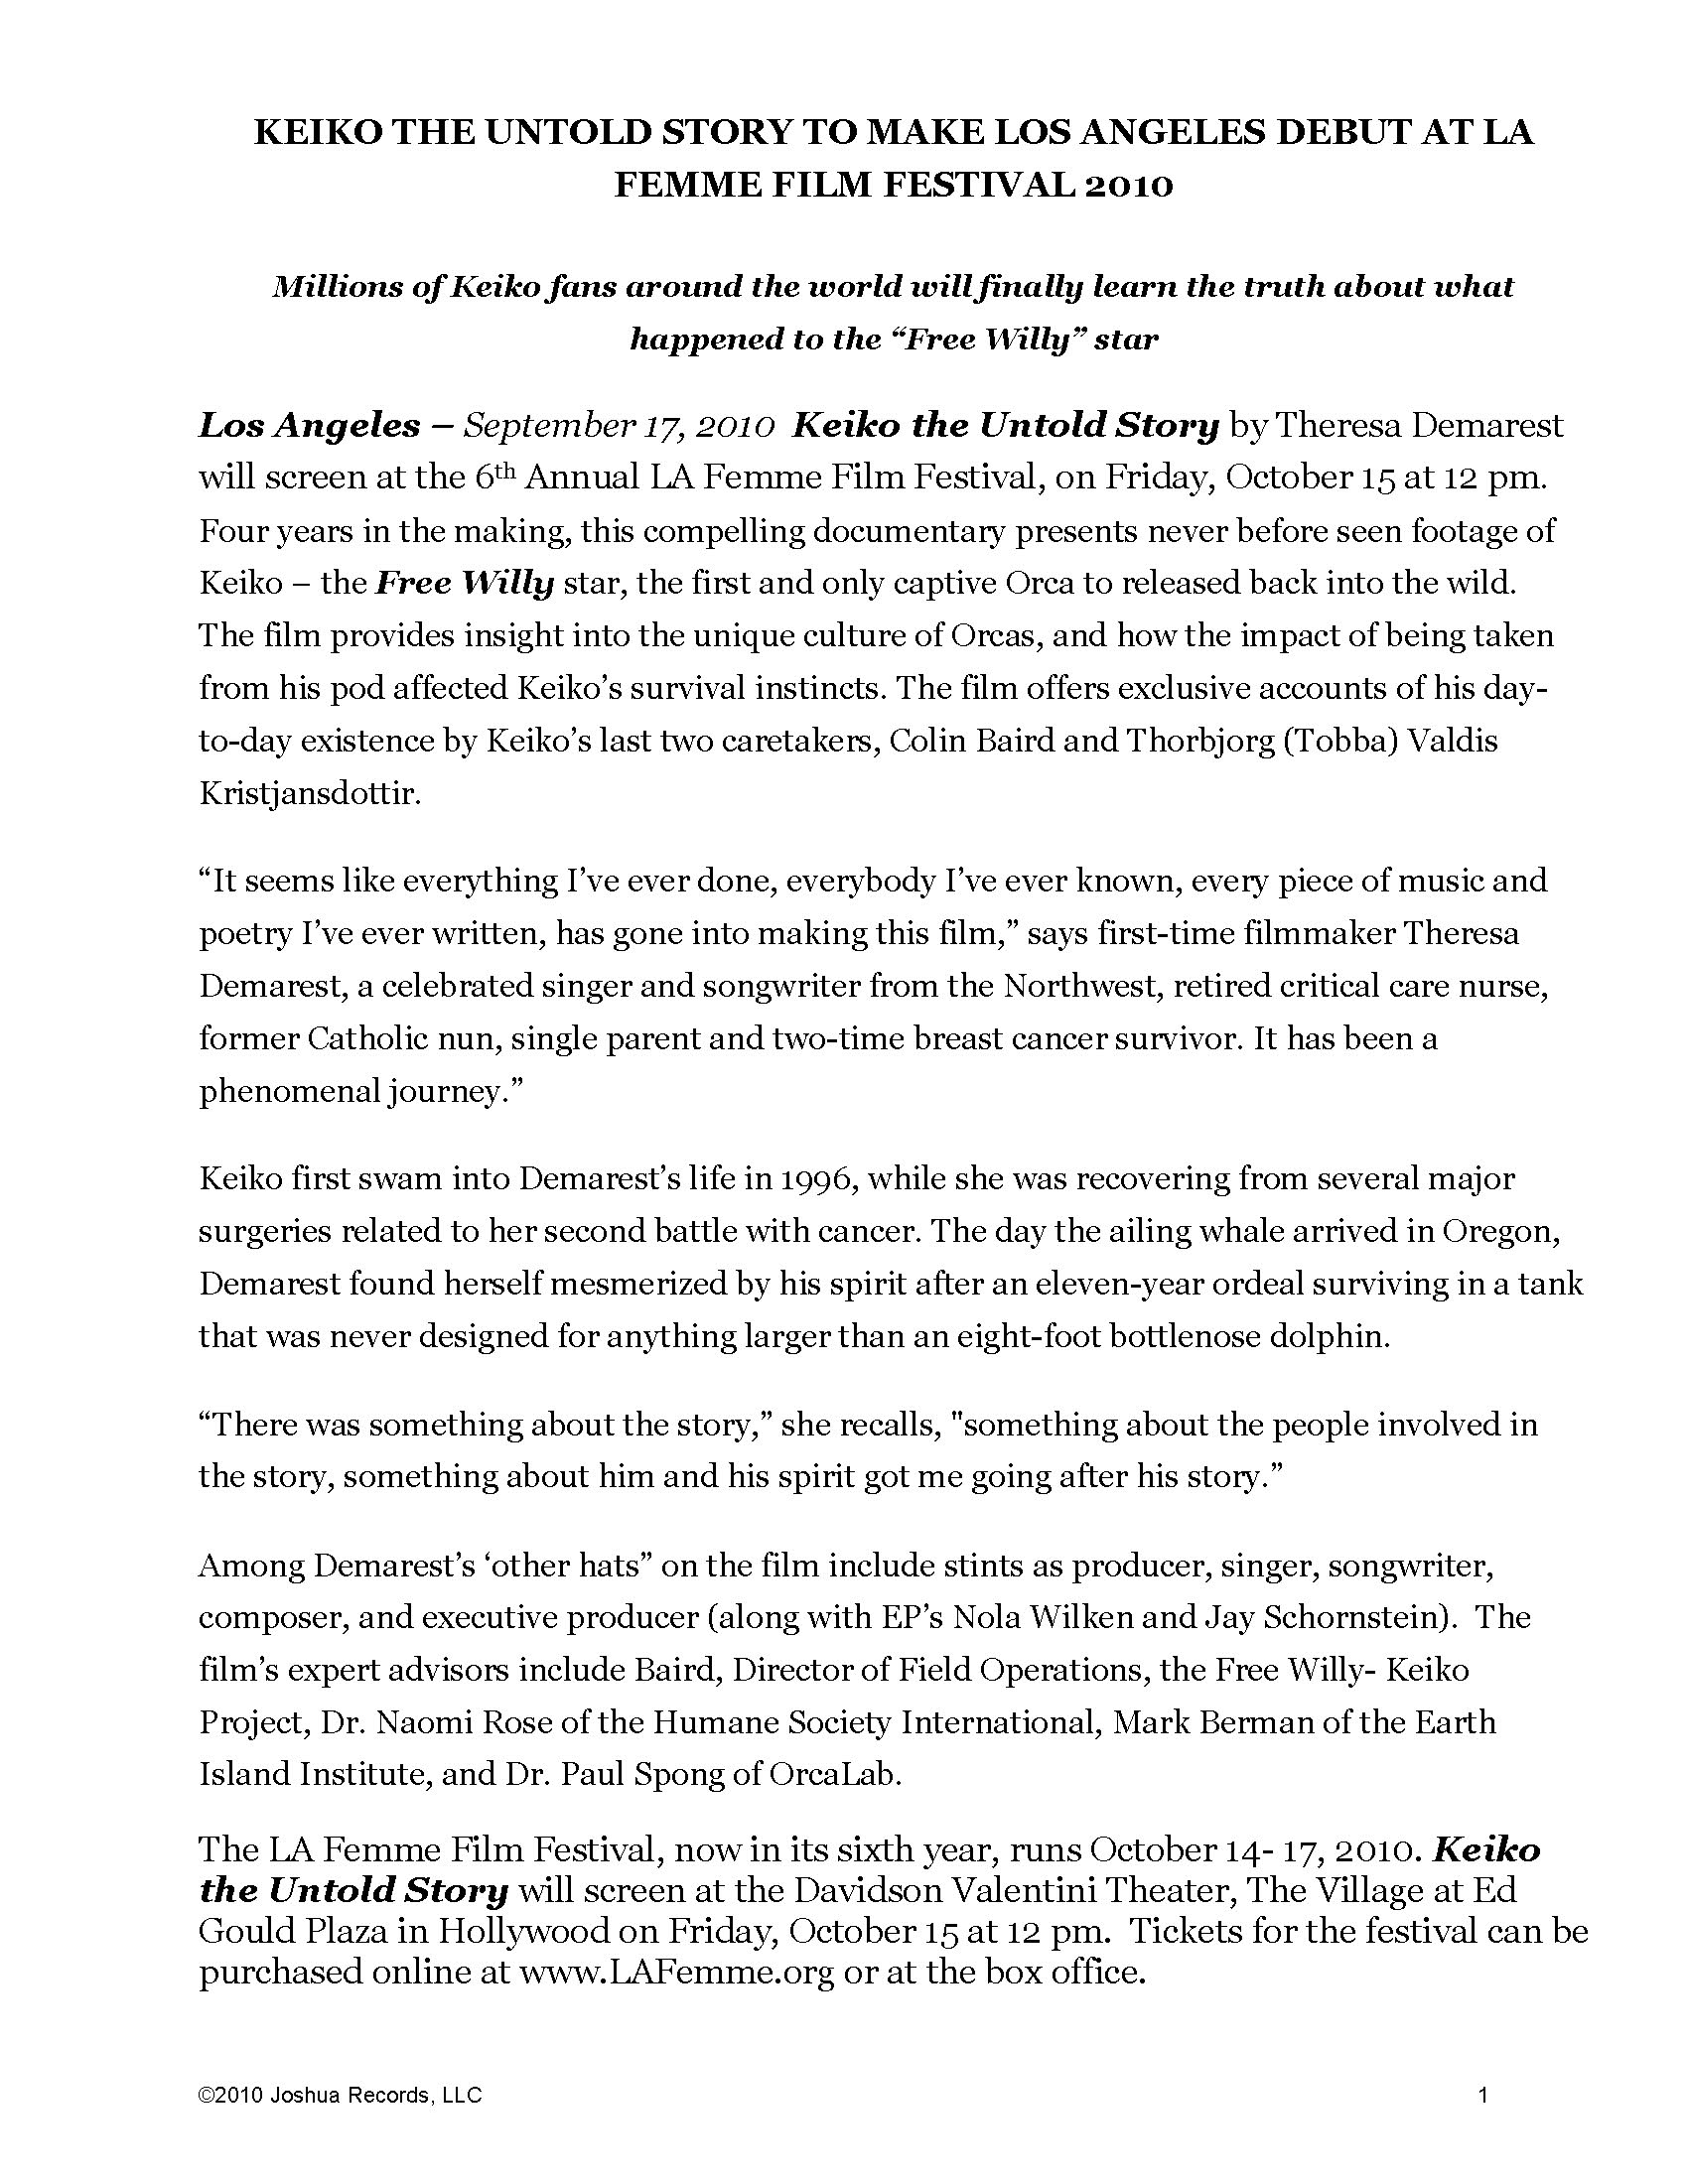 PRESS RELEASES - Keiko The Untold Story of the Star of Free Willy